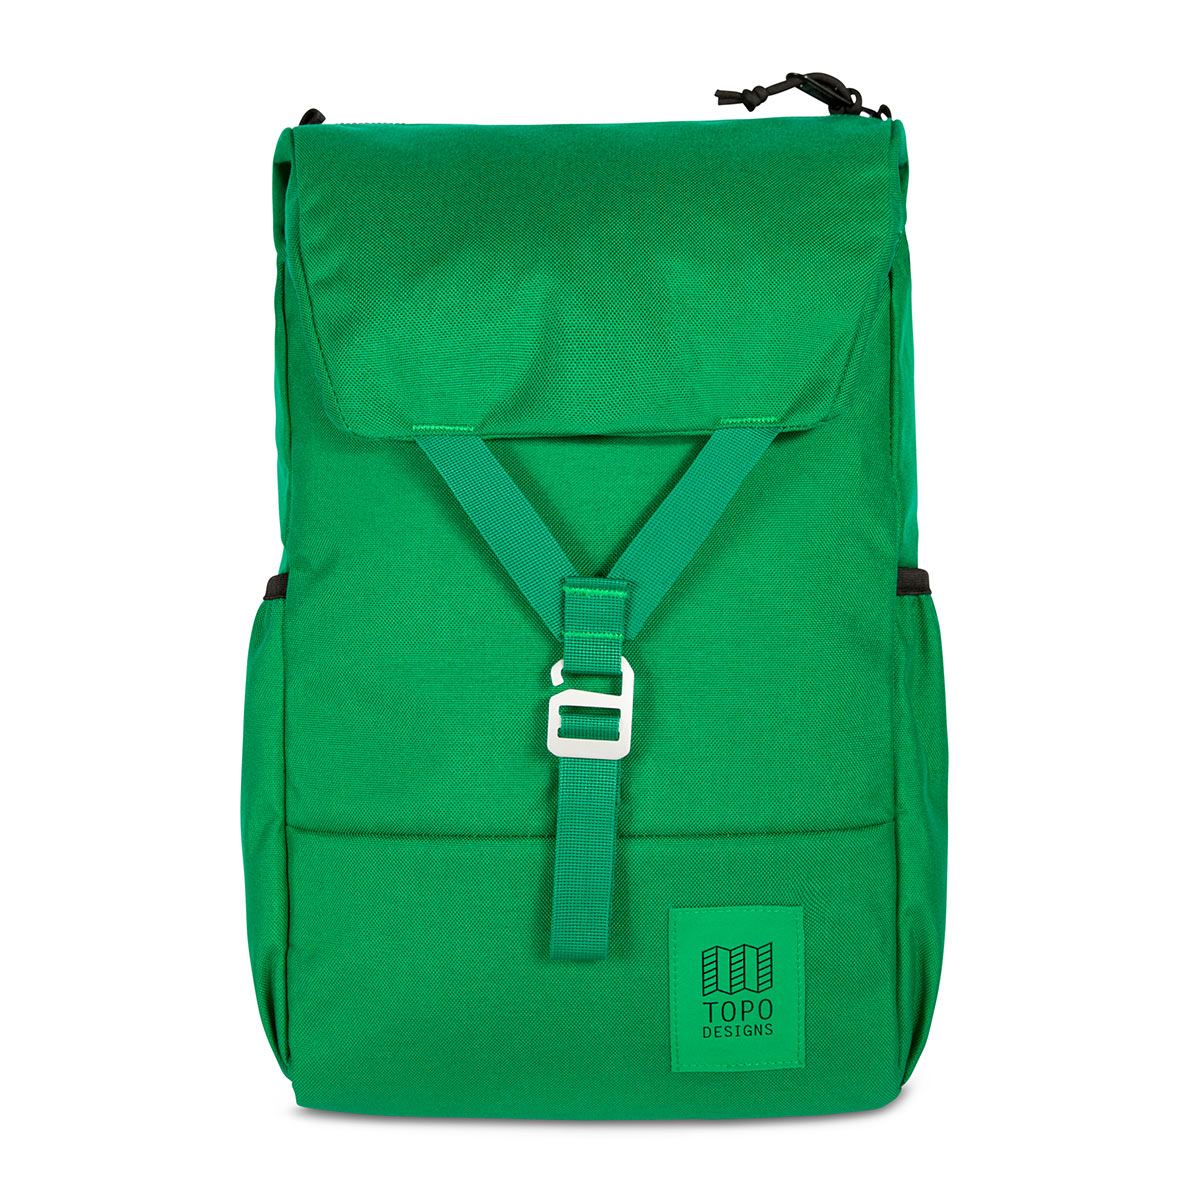 Topo Designs Y-Pack Green/Green fuses classic style and modern functionality